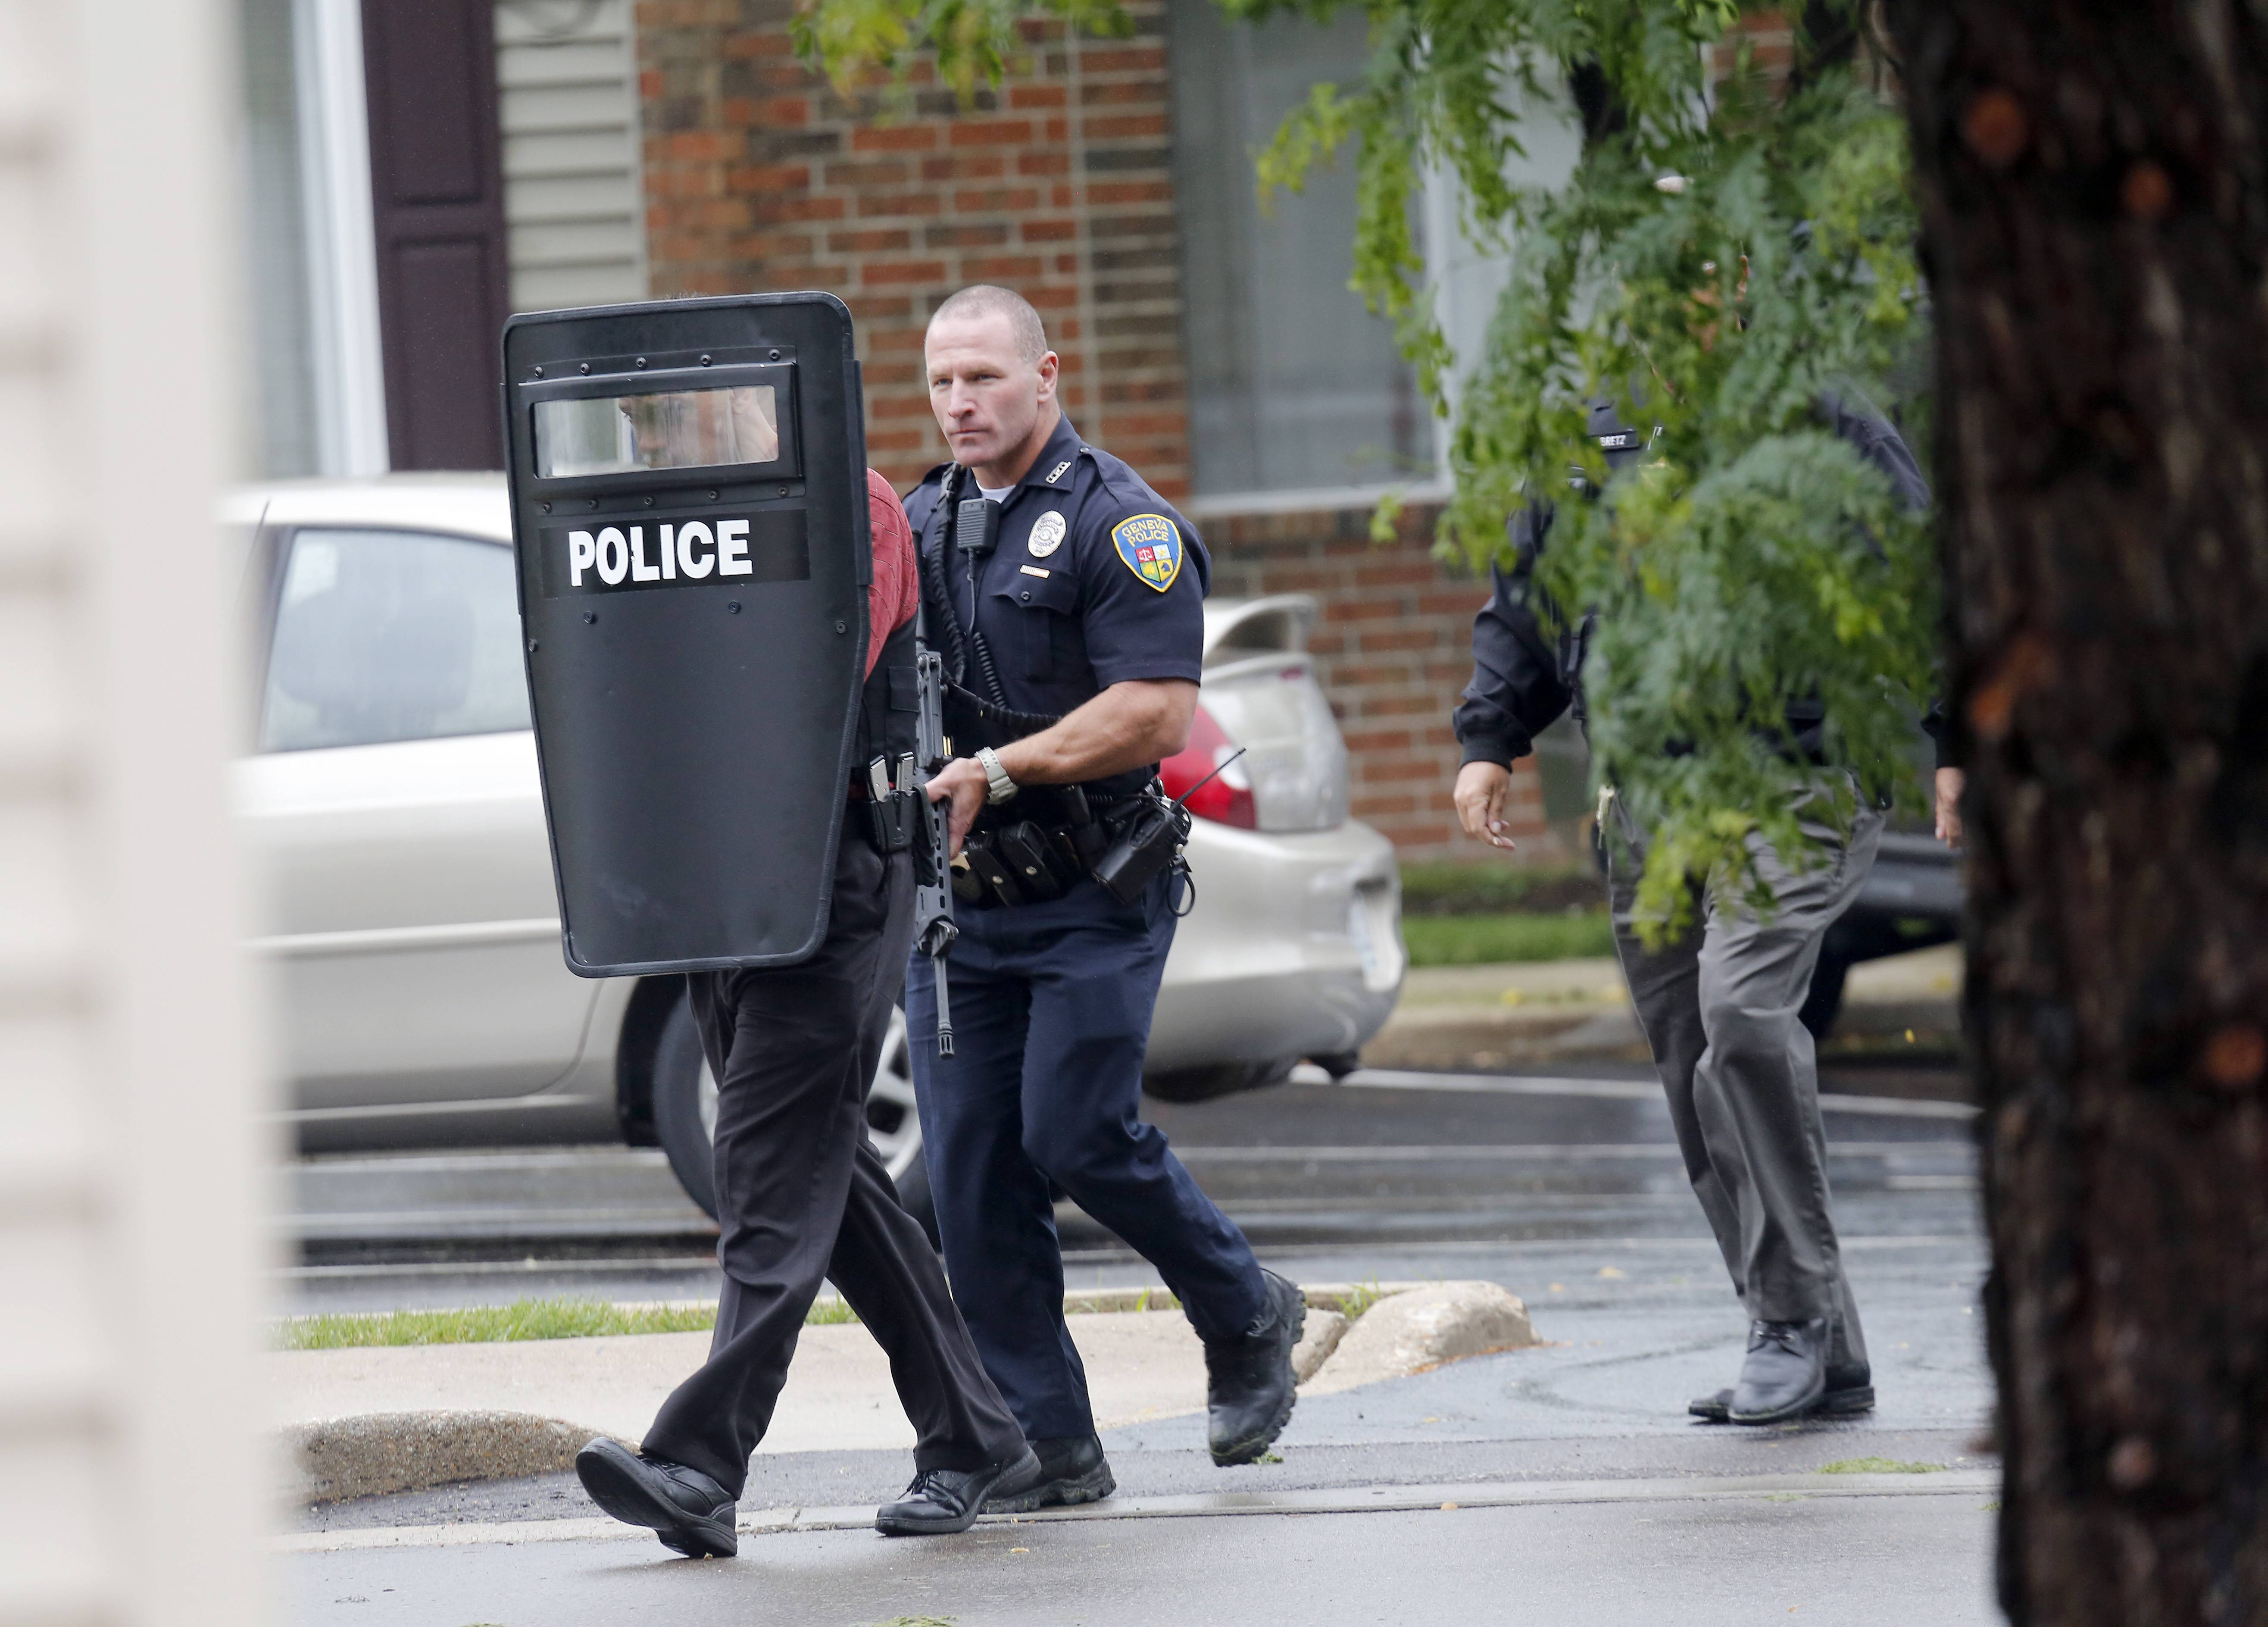 Officers from St. Charles, Geneva, Batavia and Sugar Grove move into position Wednesday at Ashford At Geneva Apartment Homes to apprehend two people wanted for questioning related to a series of local robberies.